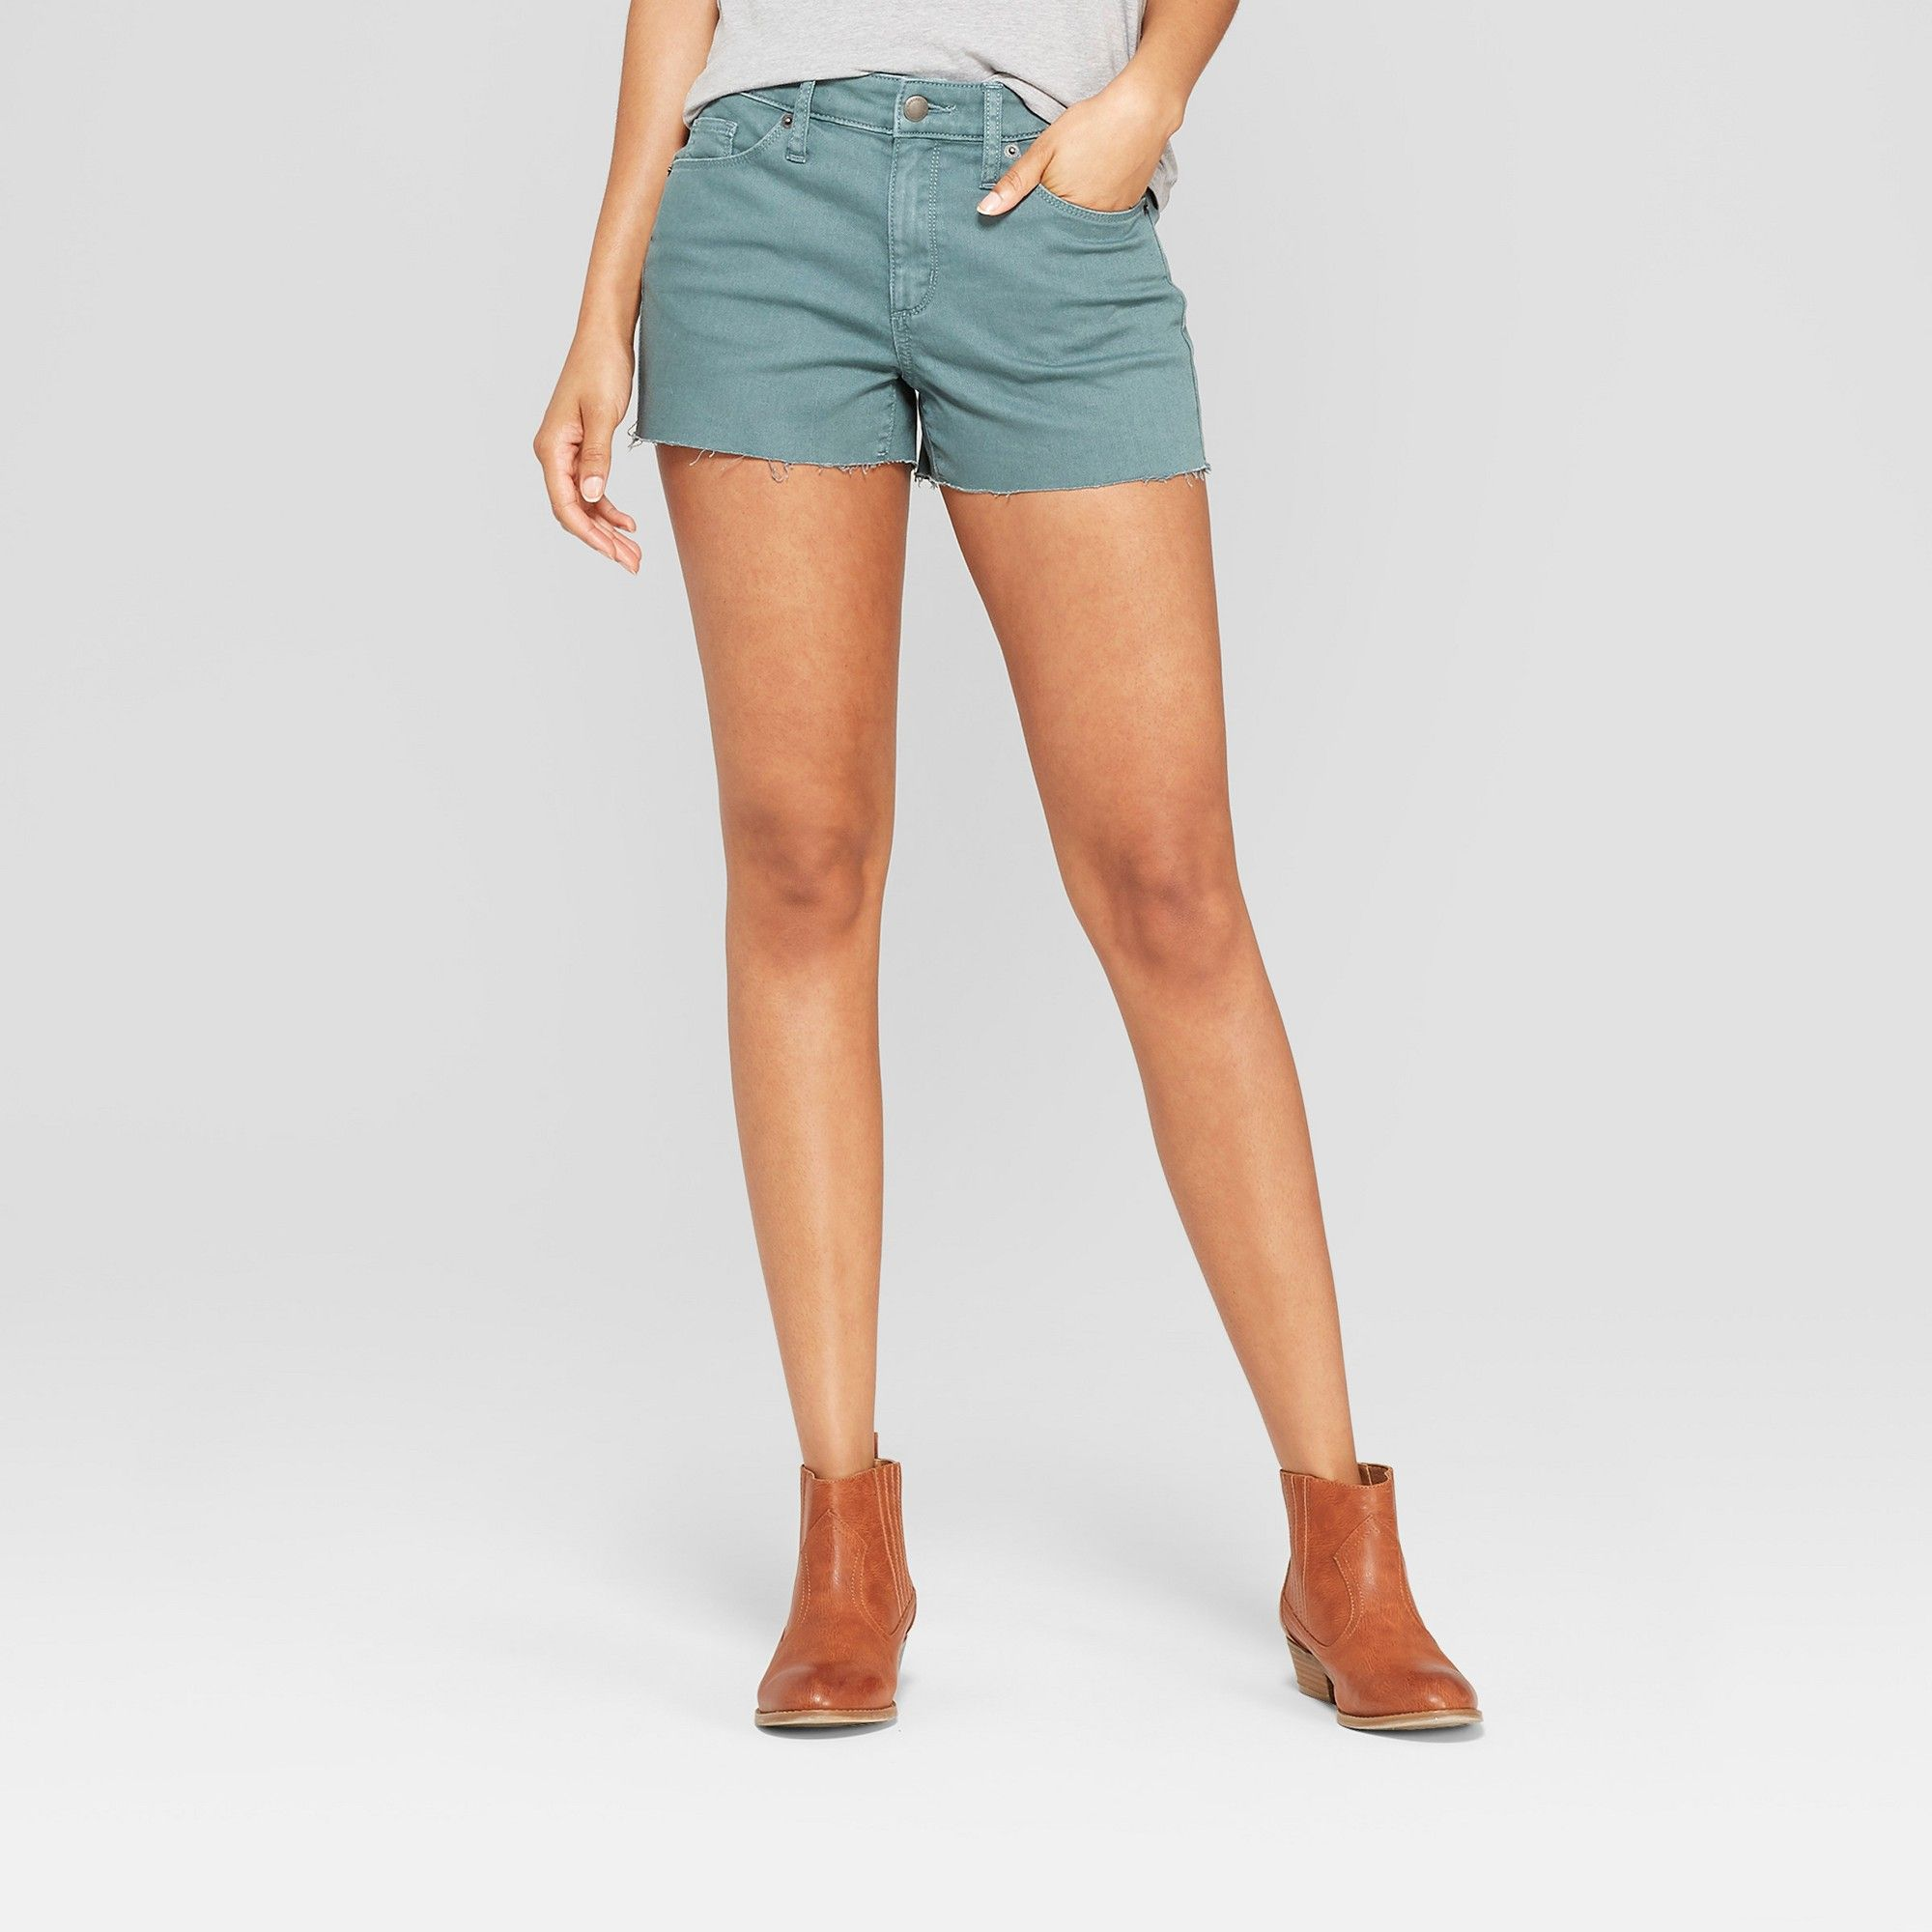 fd4f485397 Women's High-Rise Shortie Jean Shorts - Universal Thread Green 18 ...